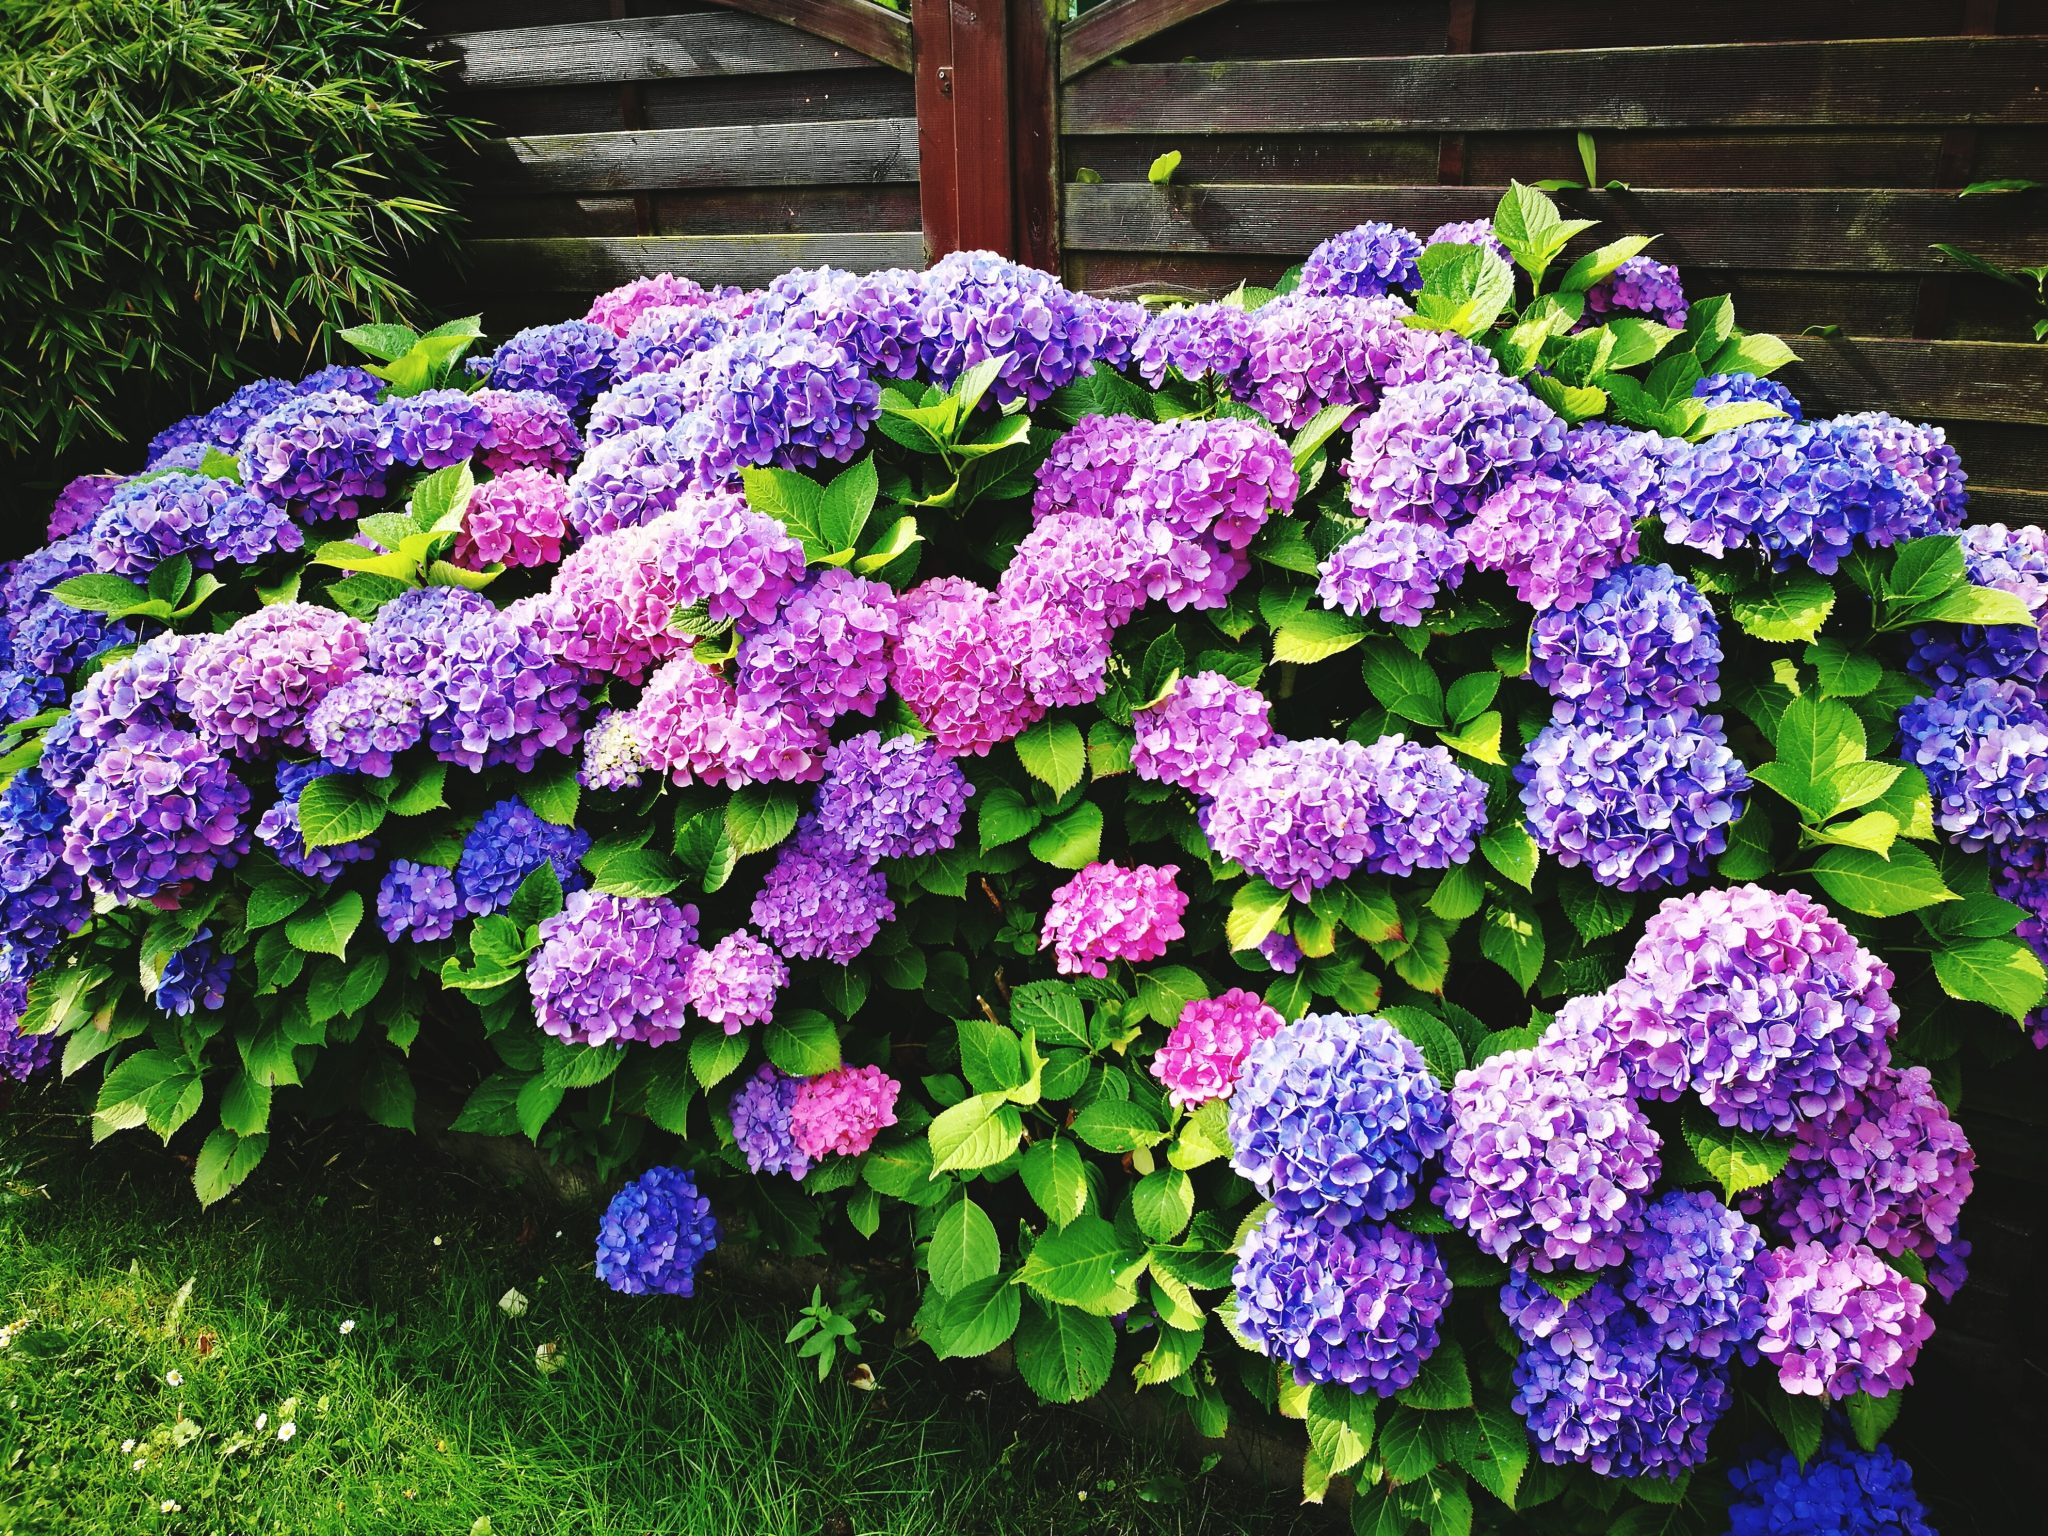 Hydrangea Blooming On Plant